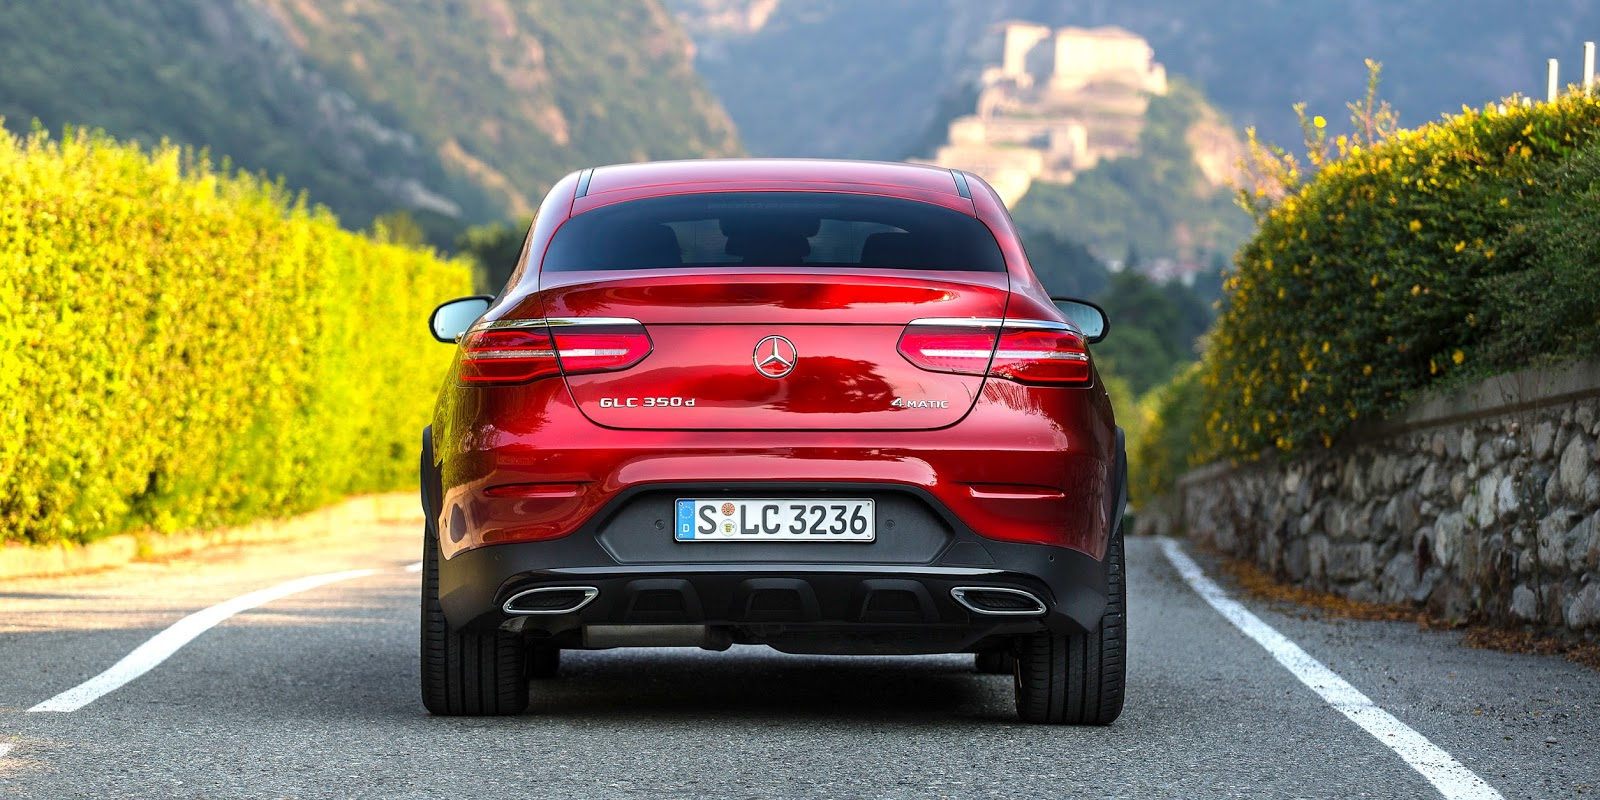 Mercedes Benz GLC Coupe 2017